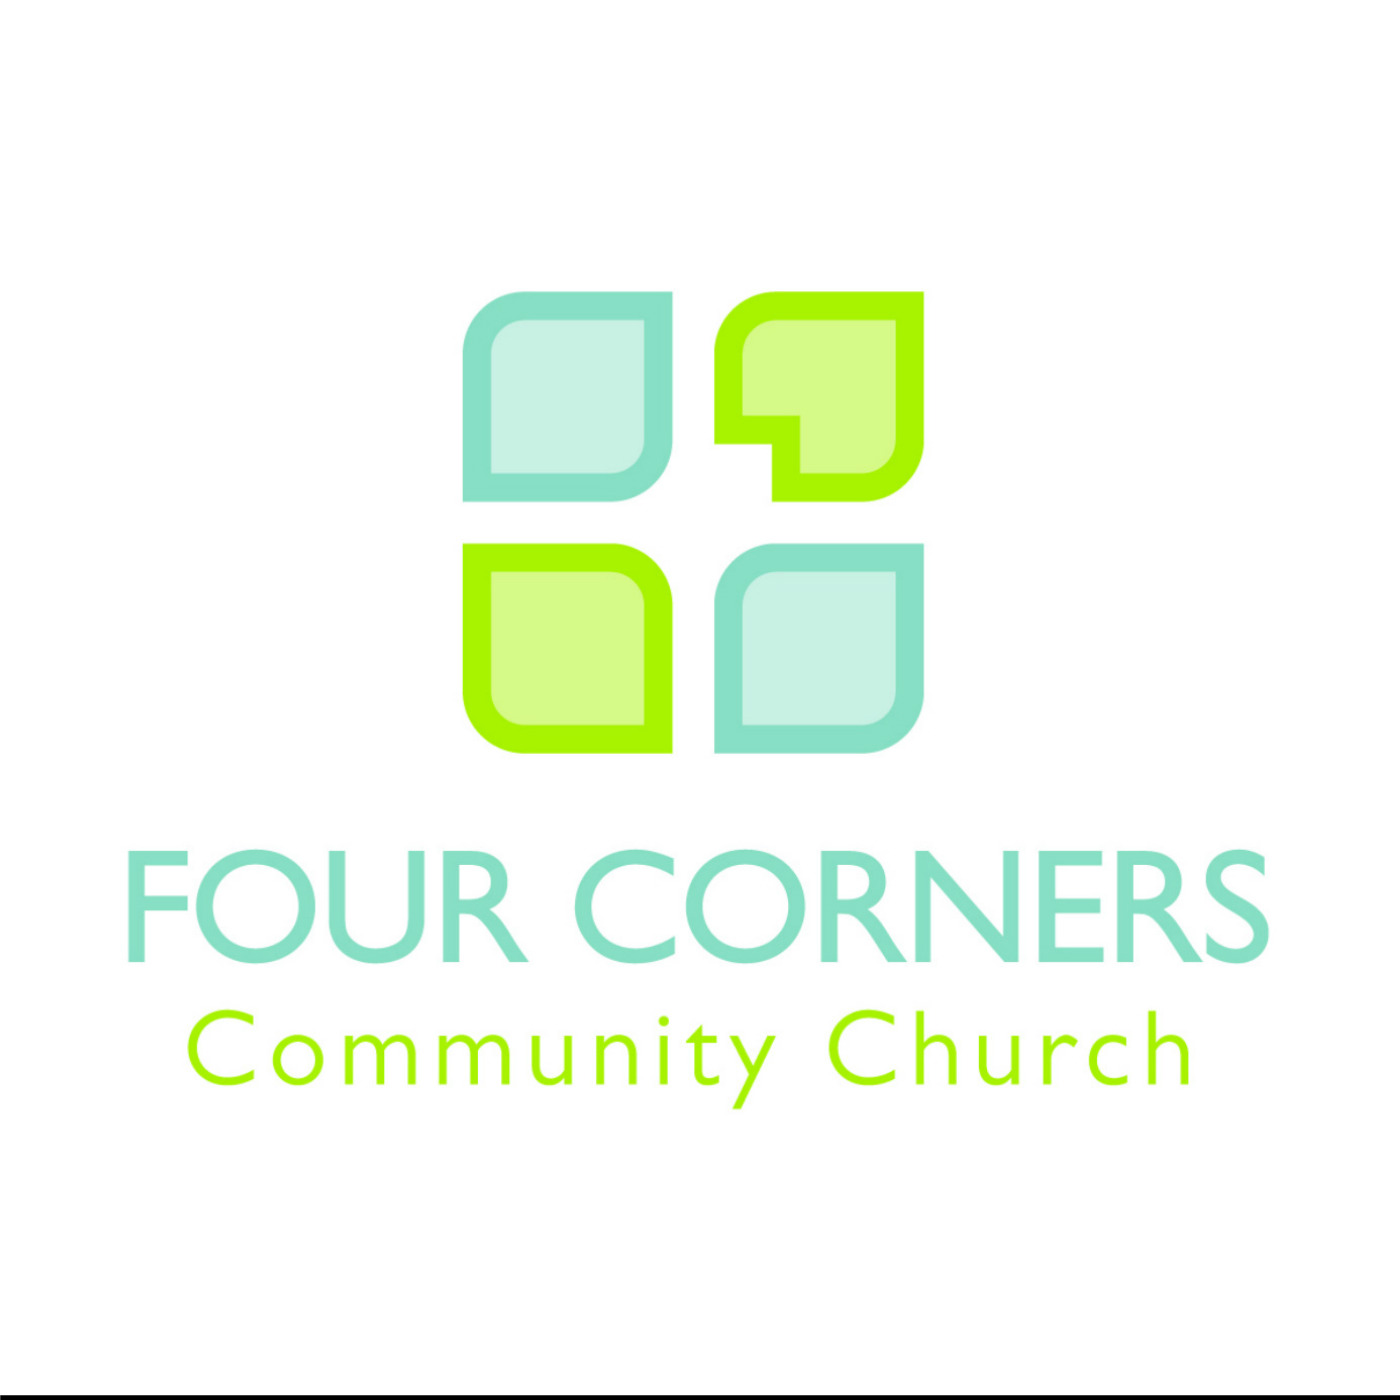 Four Corners Community Church